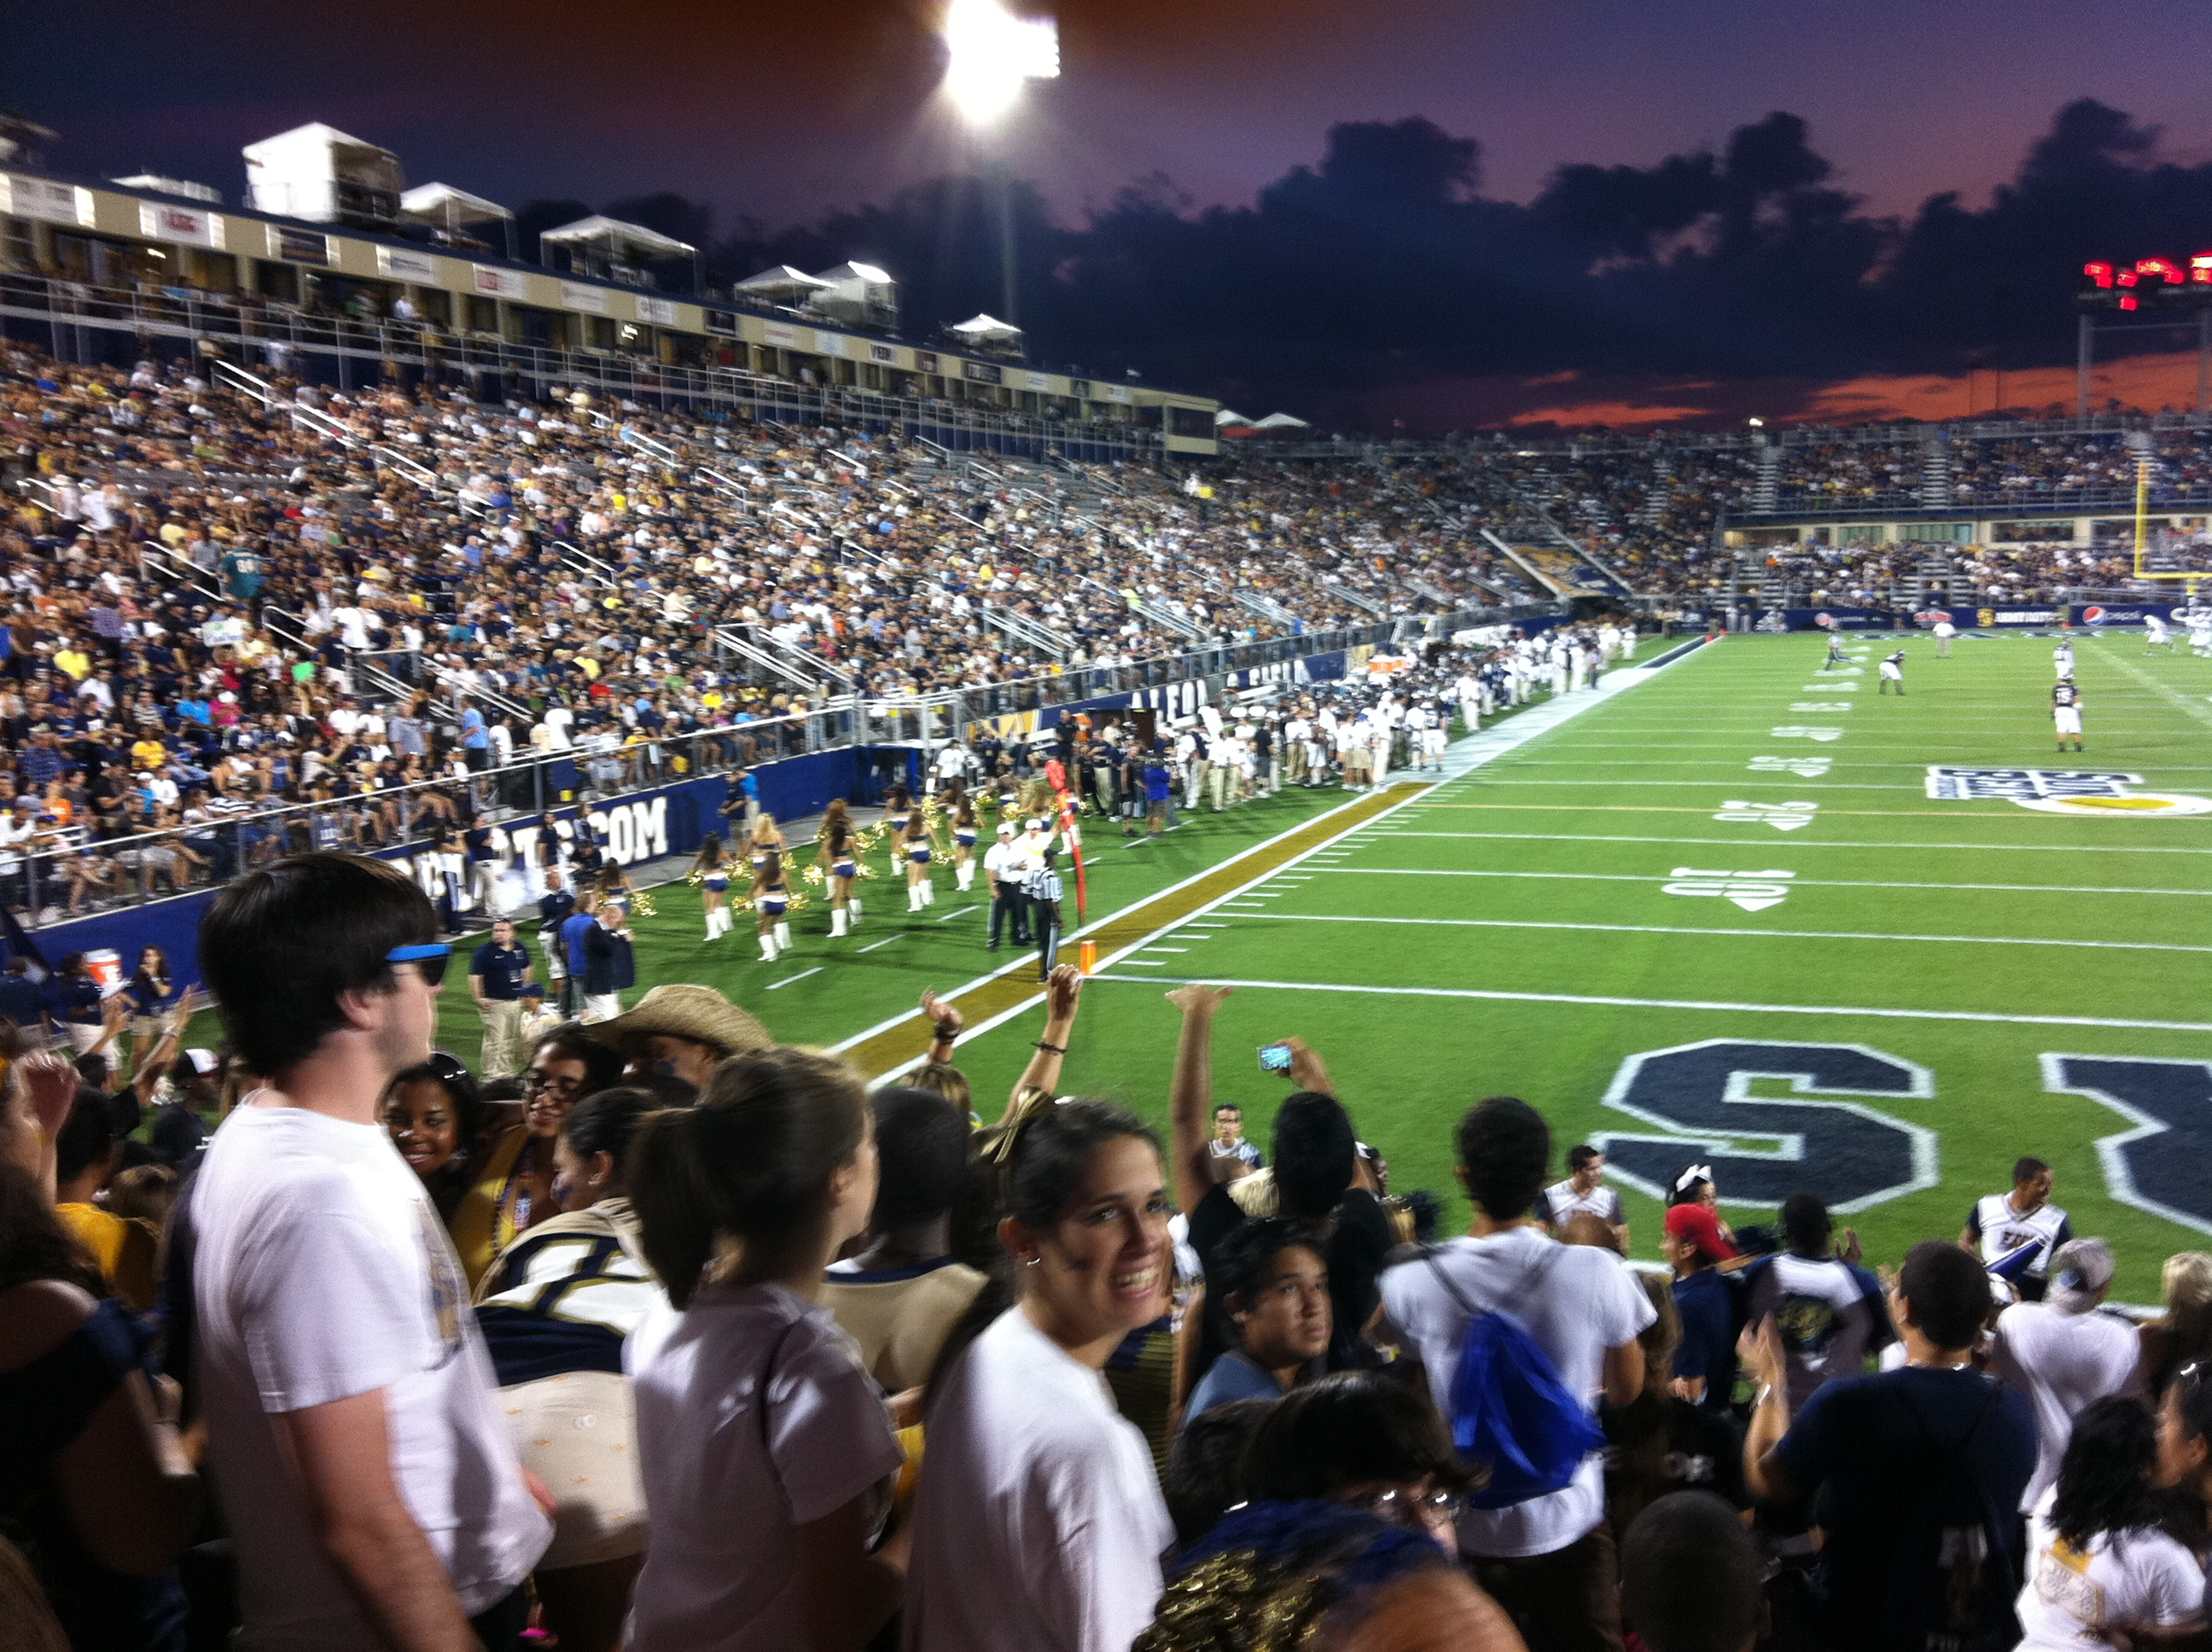 fiu panthers football - wikipedia